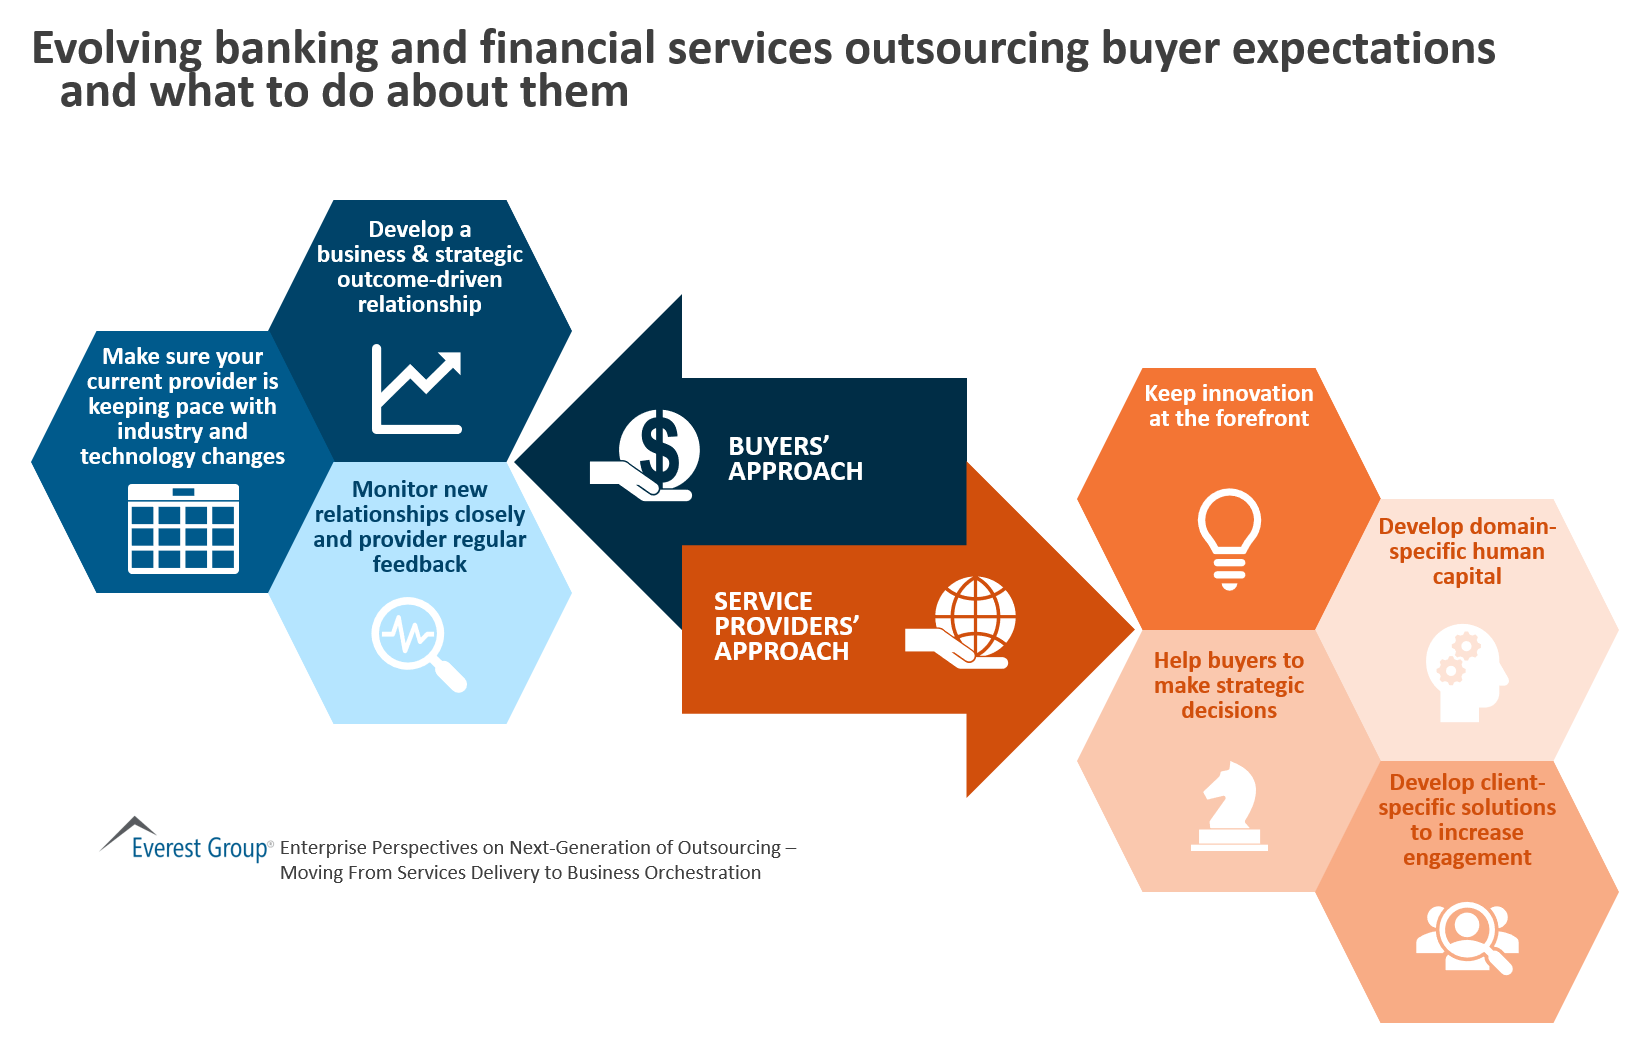 Evolving banking and financial services outsourcing buyer expectations